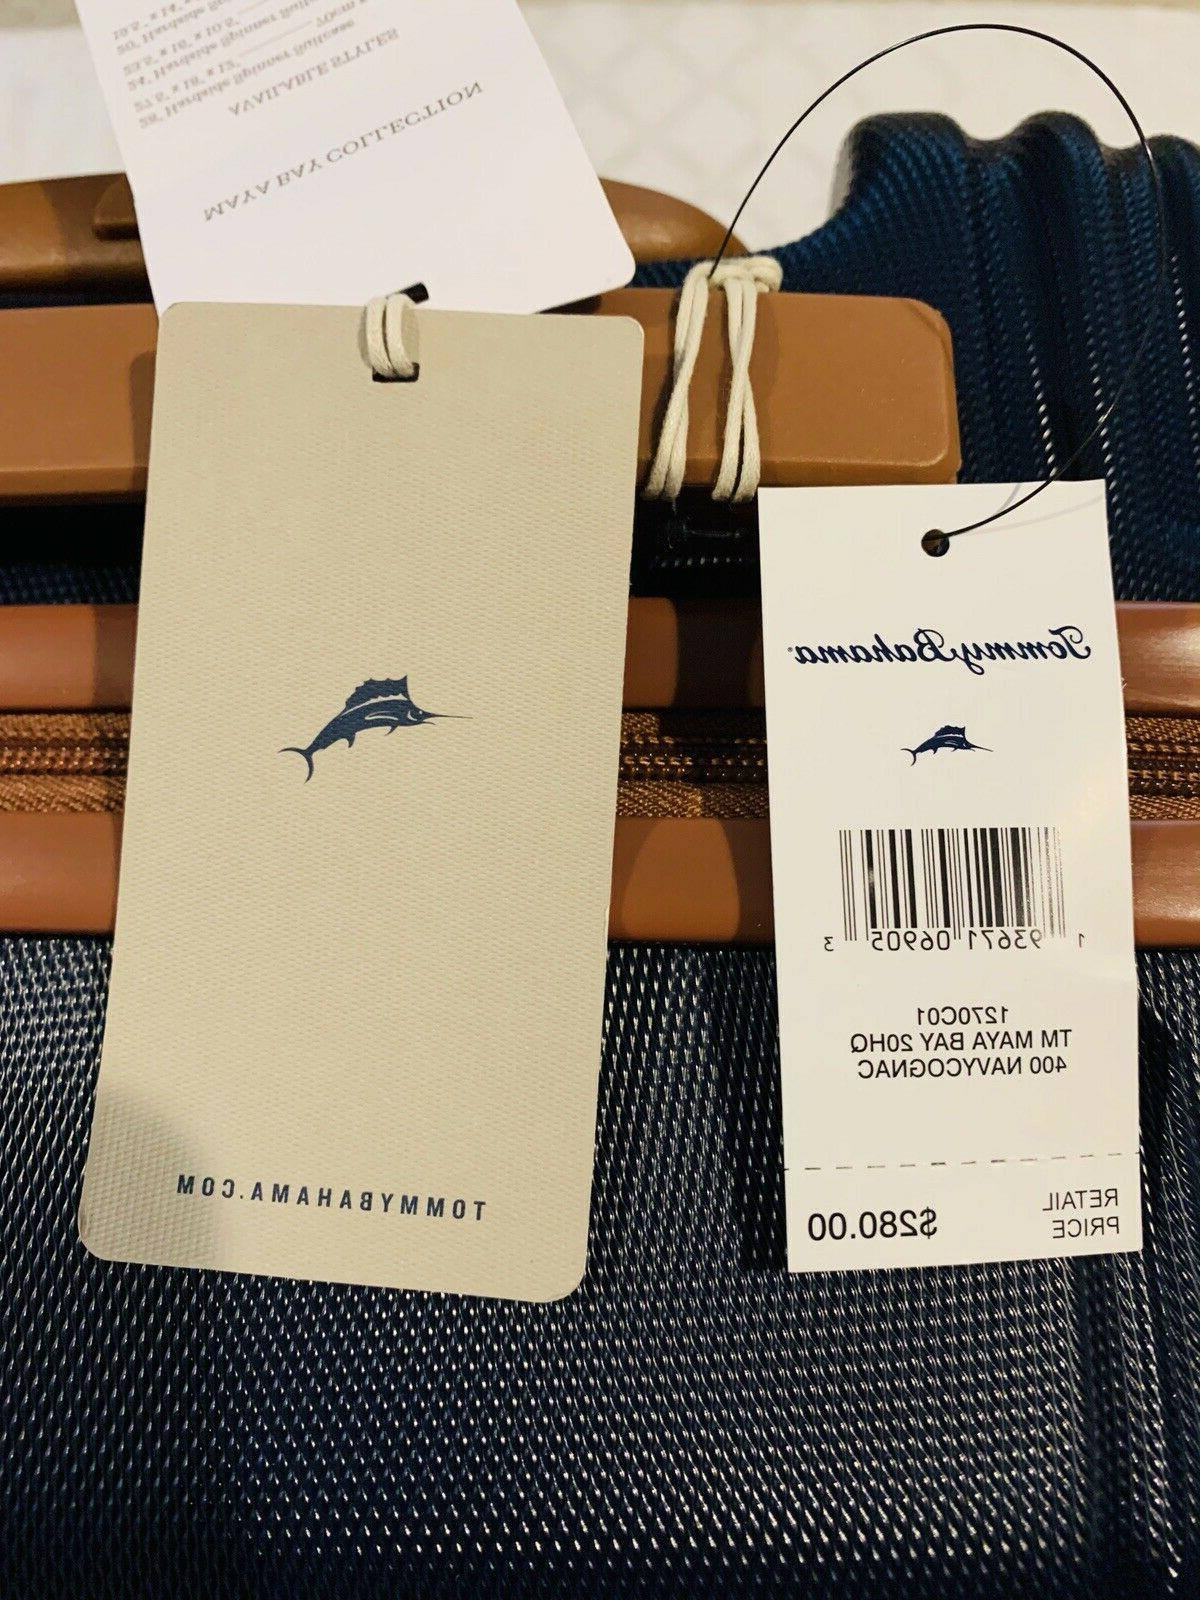 NWT Bay Collection Carry Luggage $280 Retail